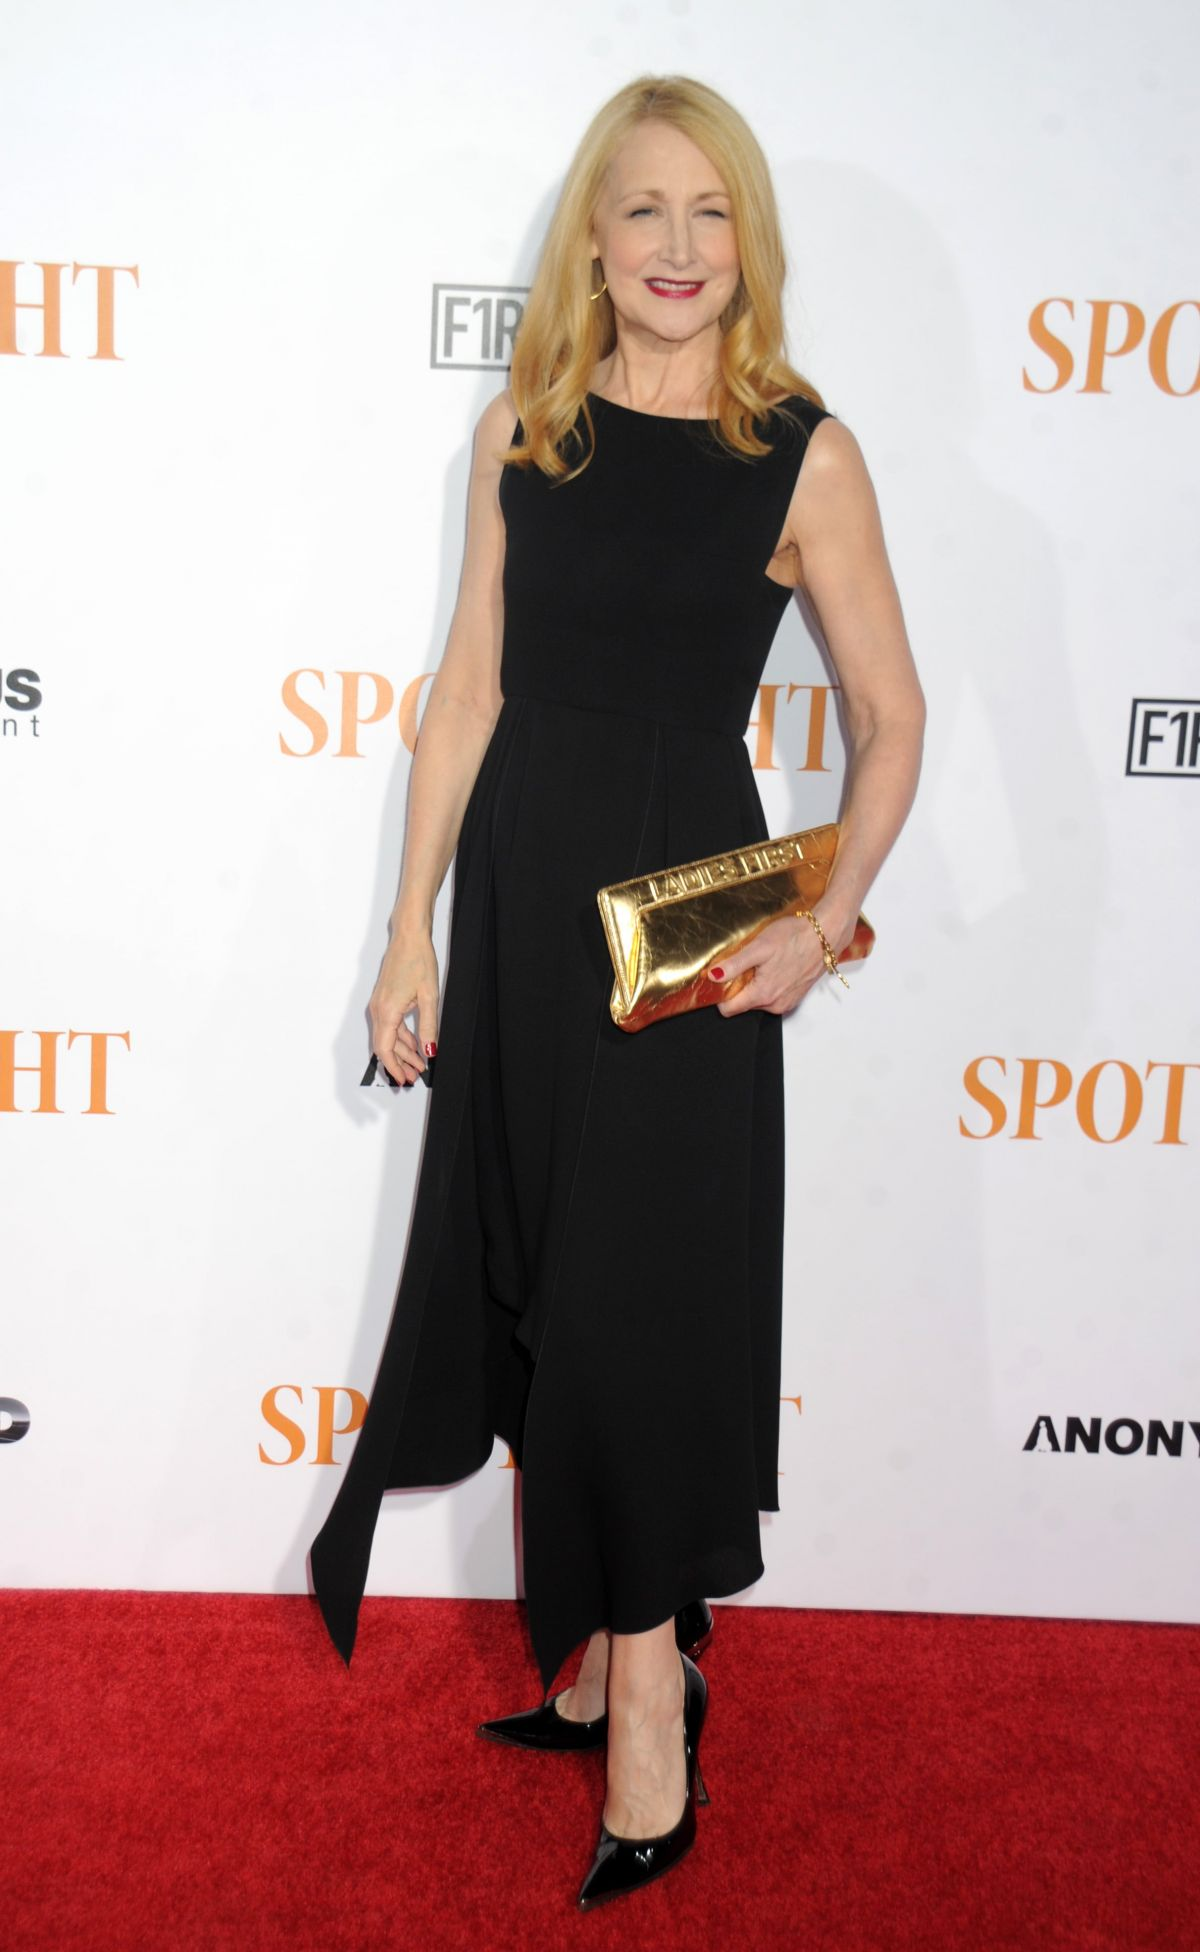 PATRICIA CLARKSON at Spotlight Premiere in New York 10/27/2015